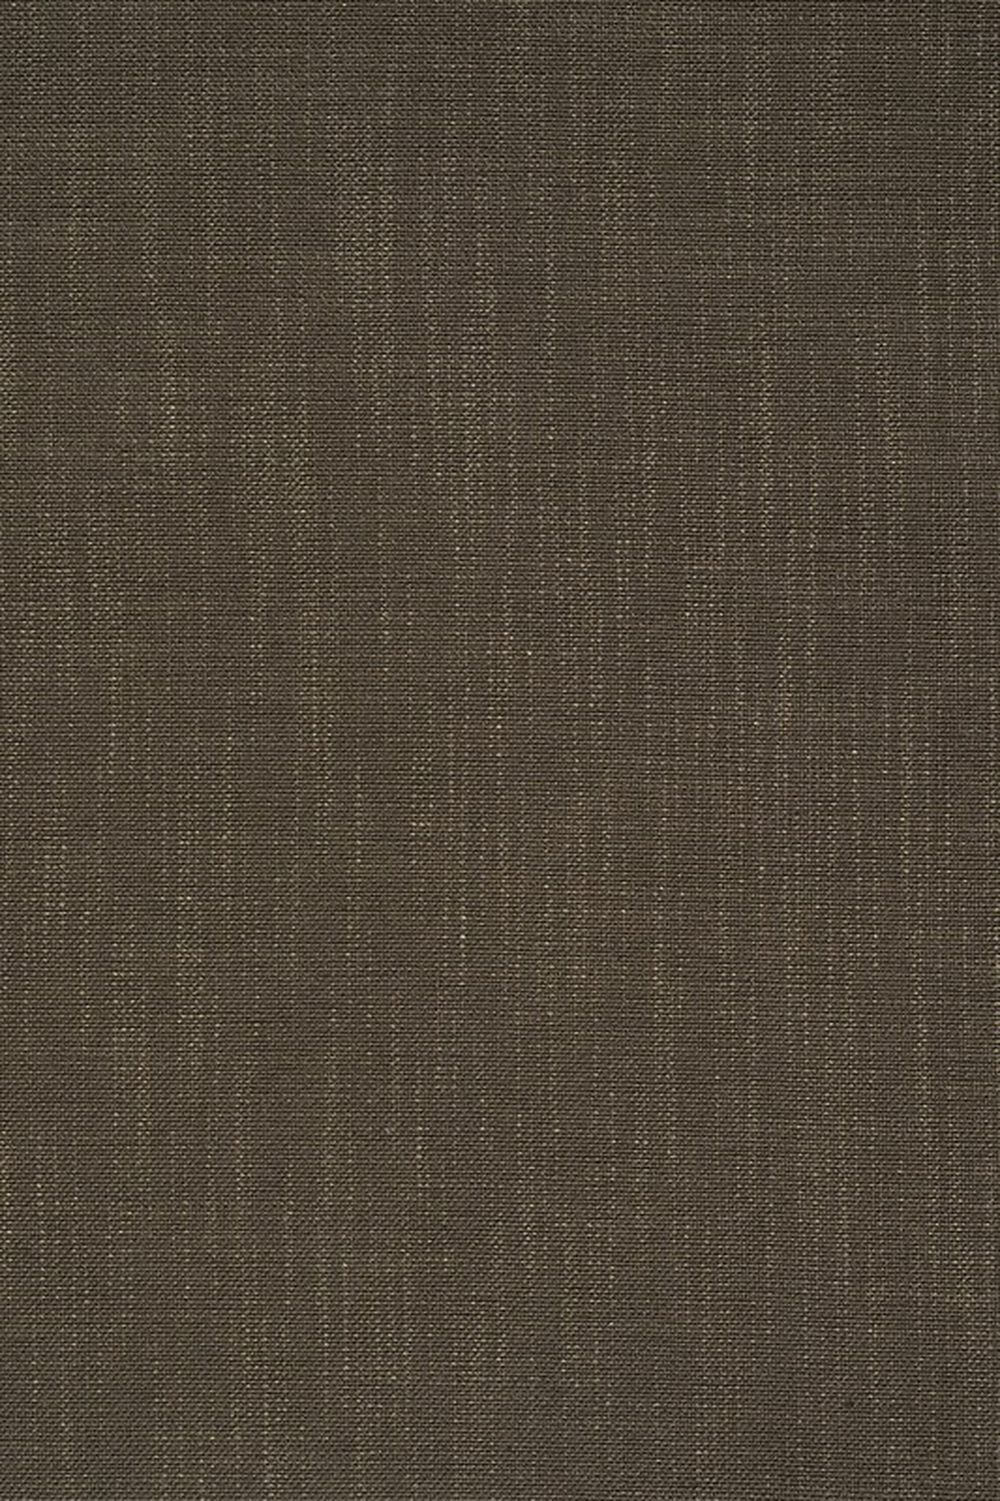 Photo of the fabric Allium Mushroom swatch by Mokum. Use for Upholstery Heavy Duty, Accessory. Style of Plain, Texture